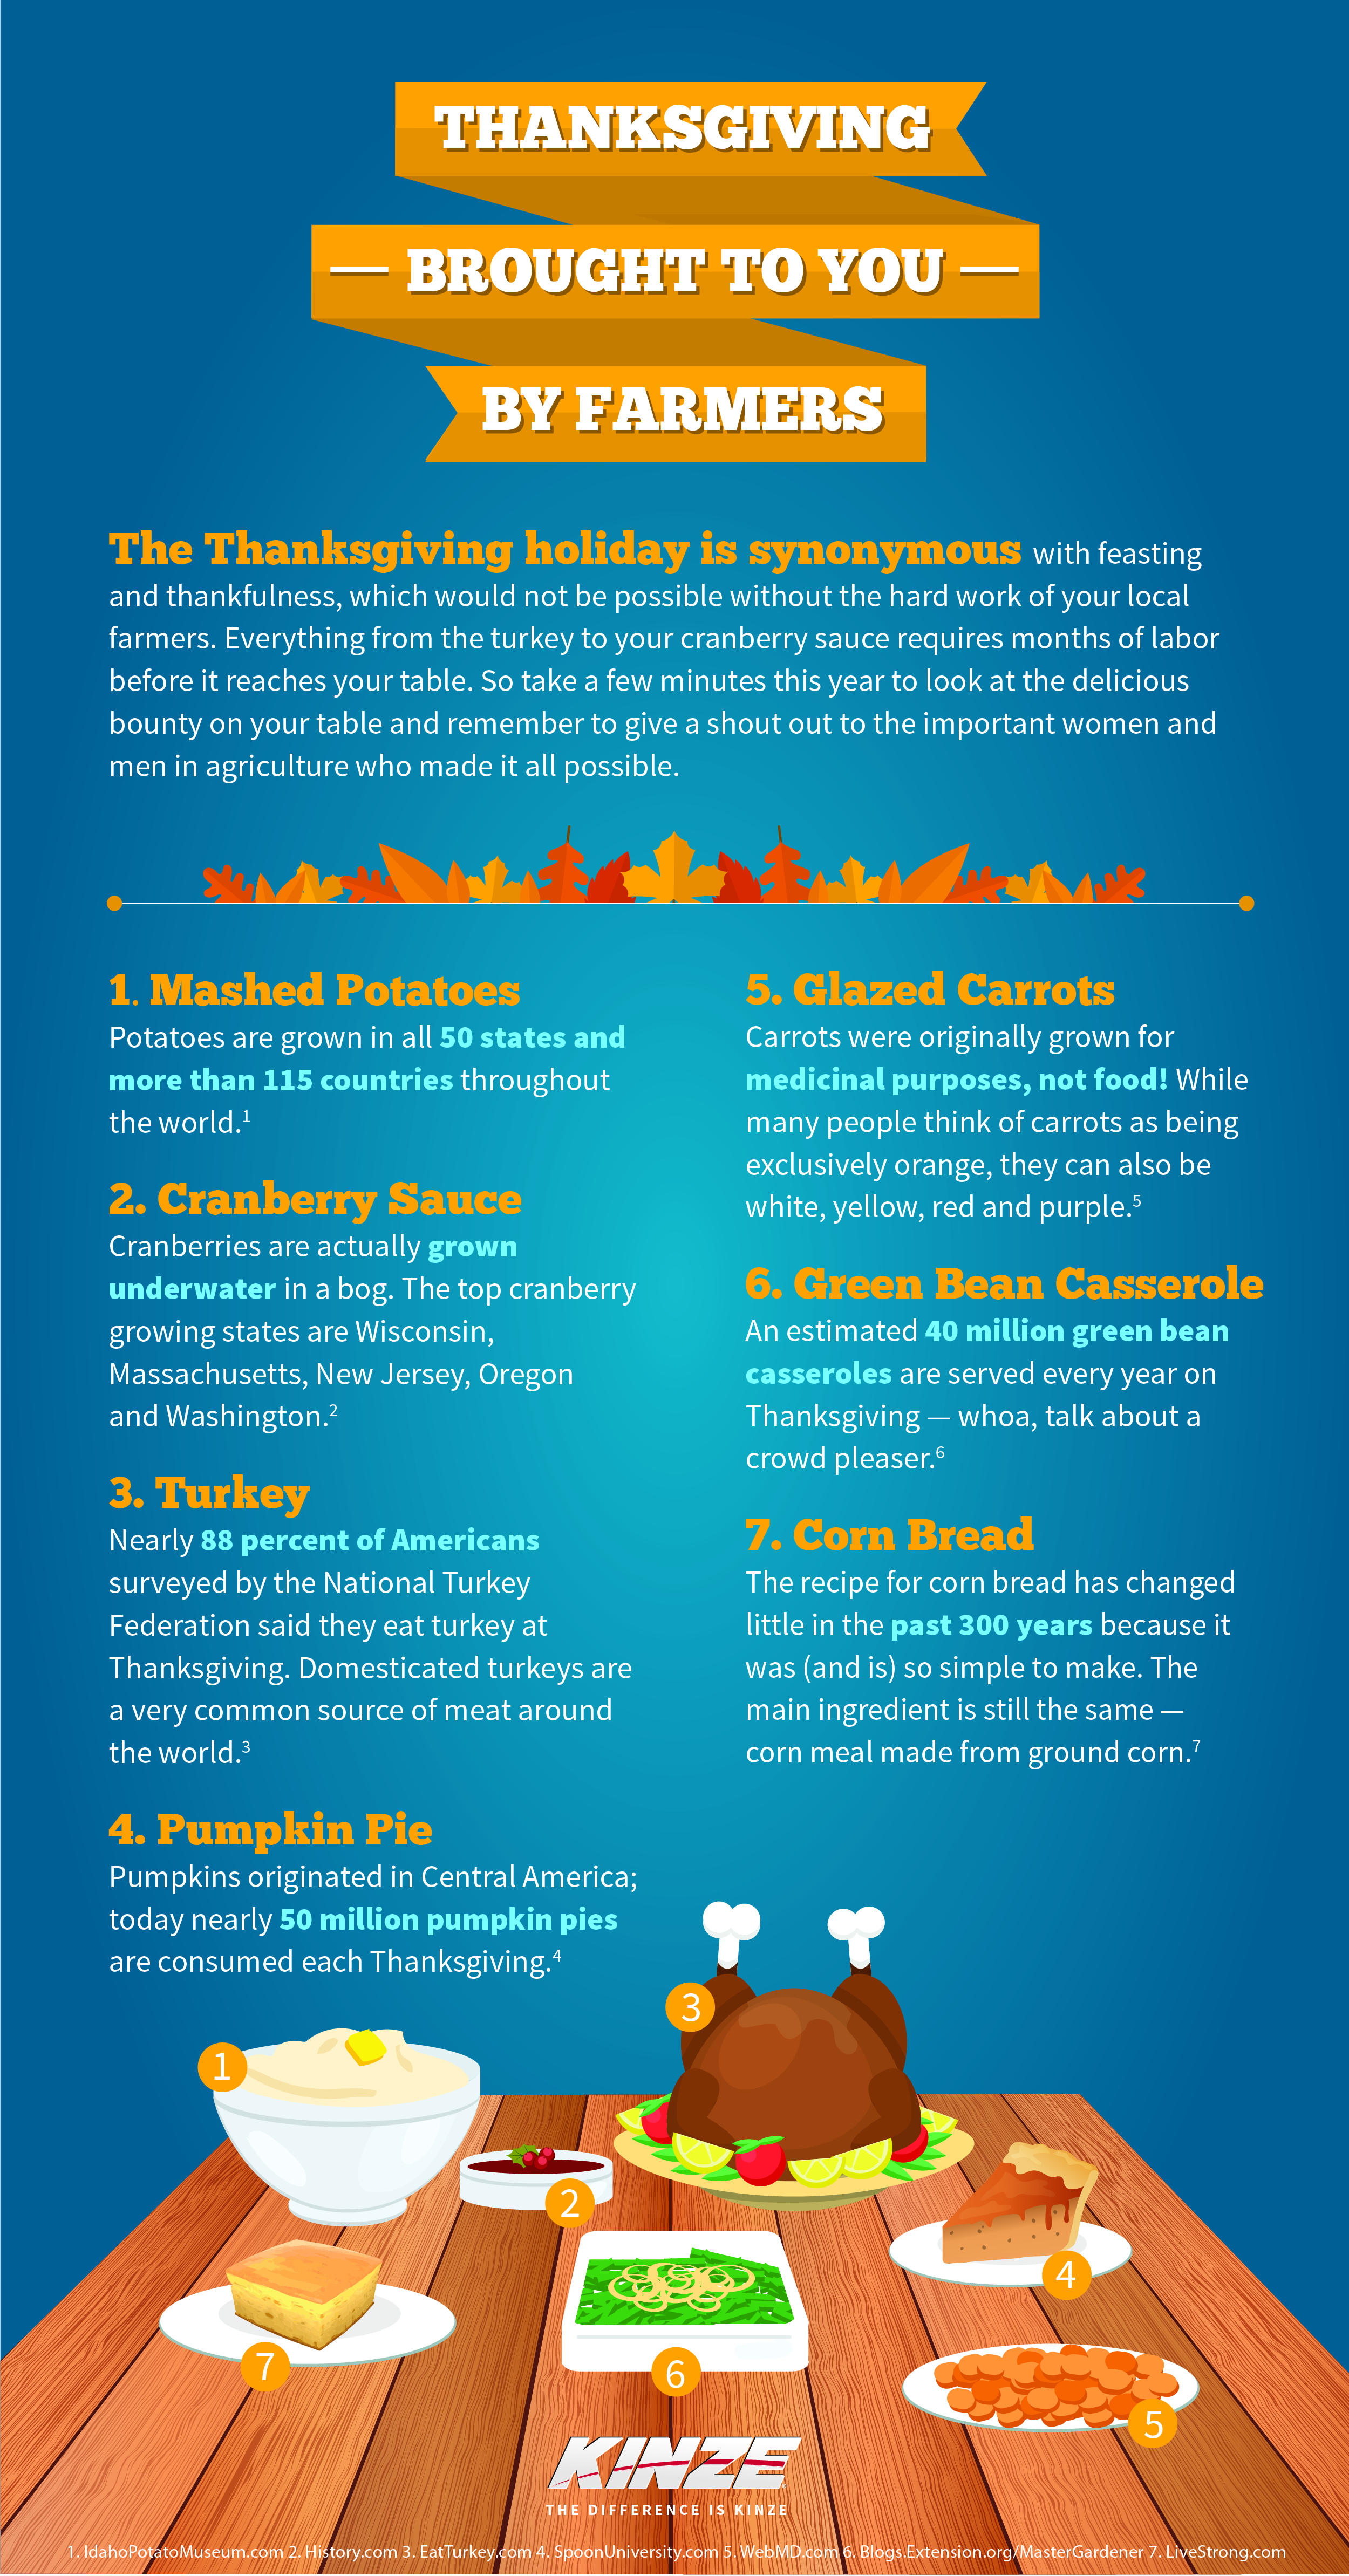 Kinze Thanksgiving Infographic